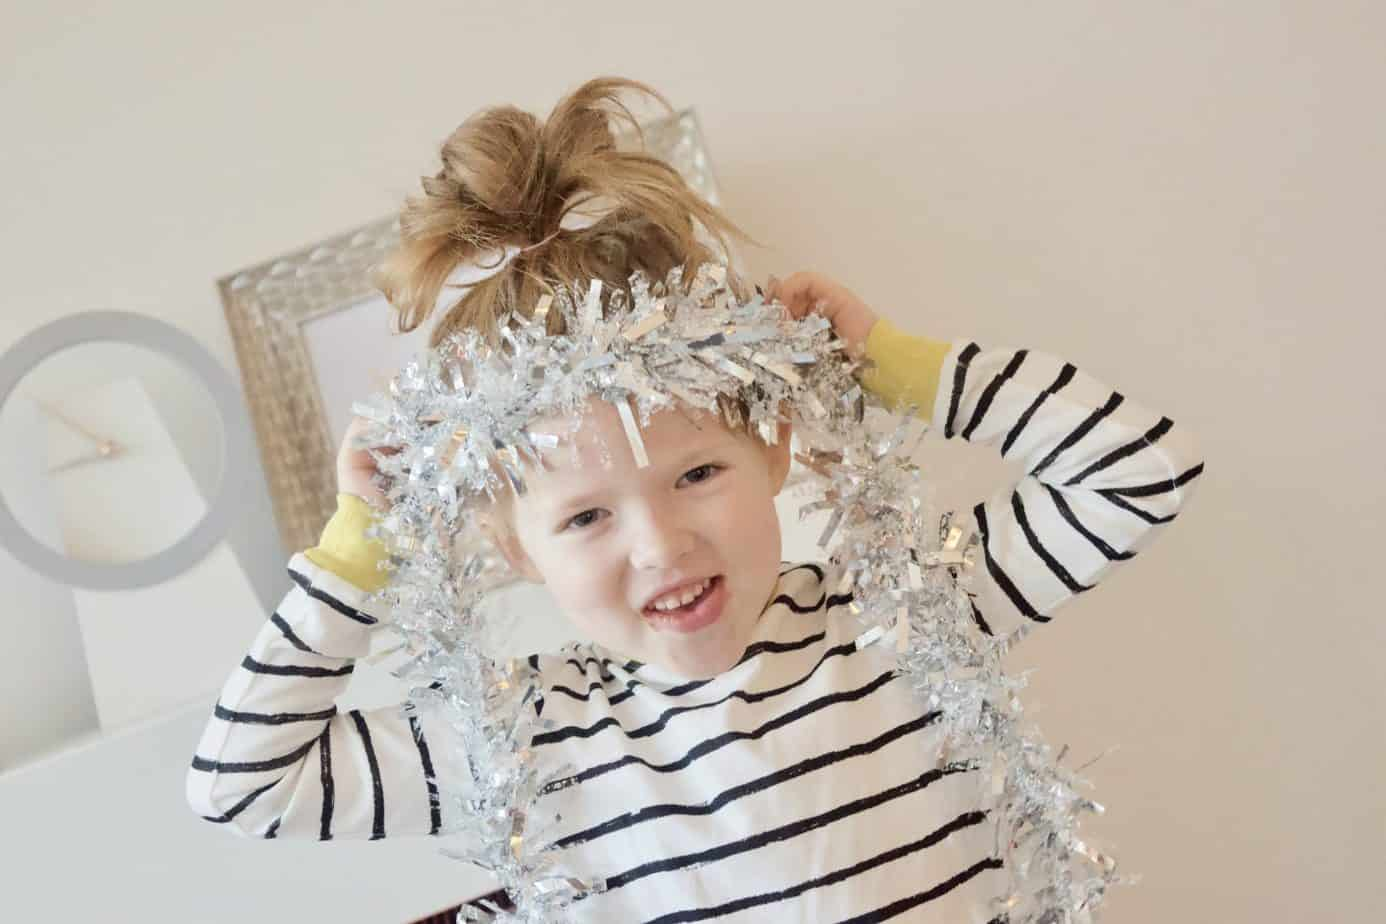 Miss W smiling at the camera with tinsel around her head wearing her organic cotton pyjamas